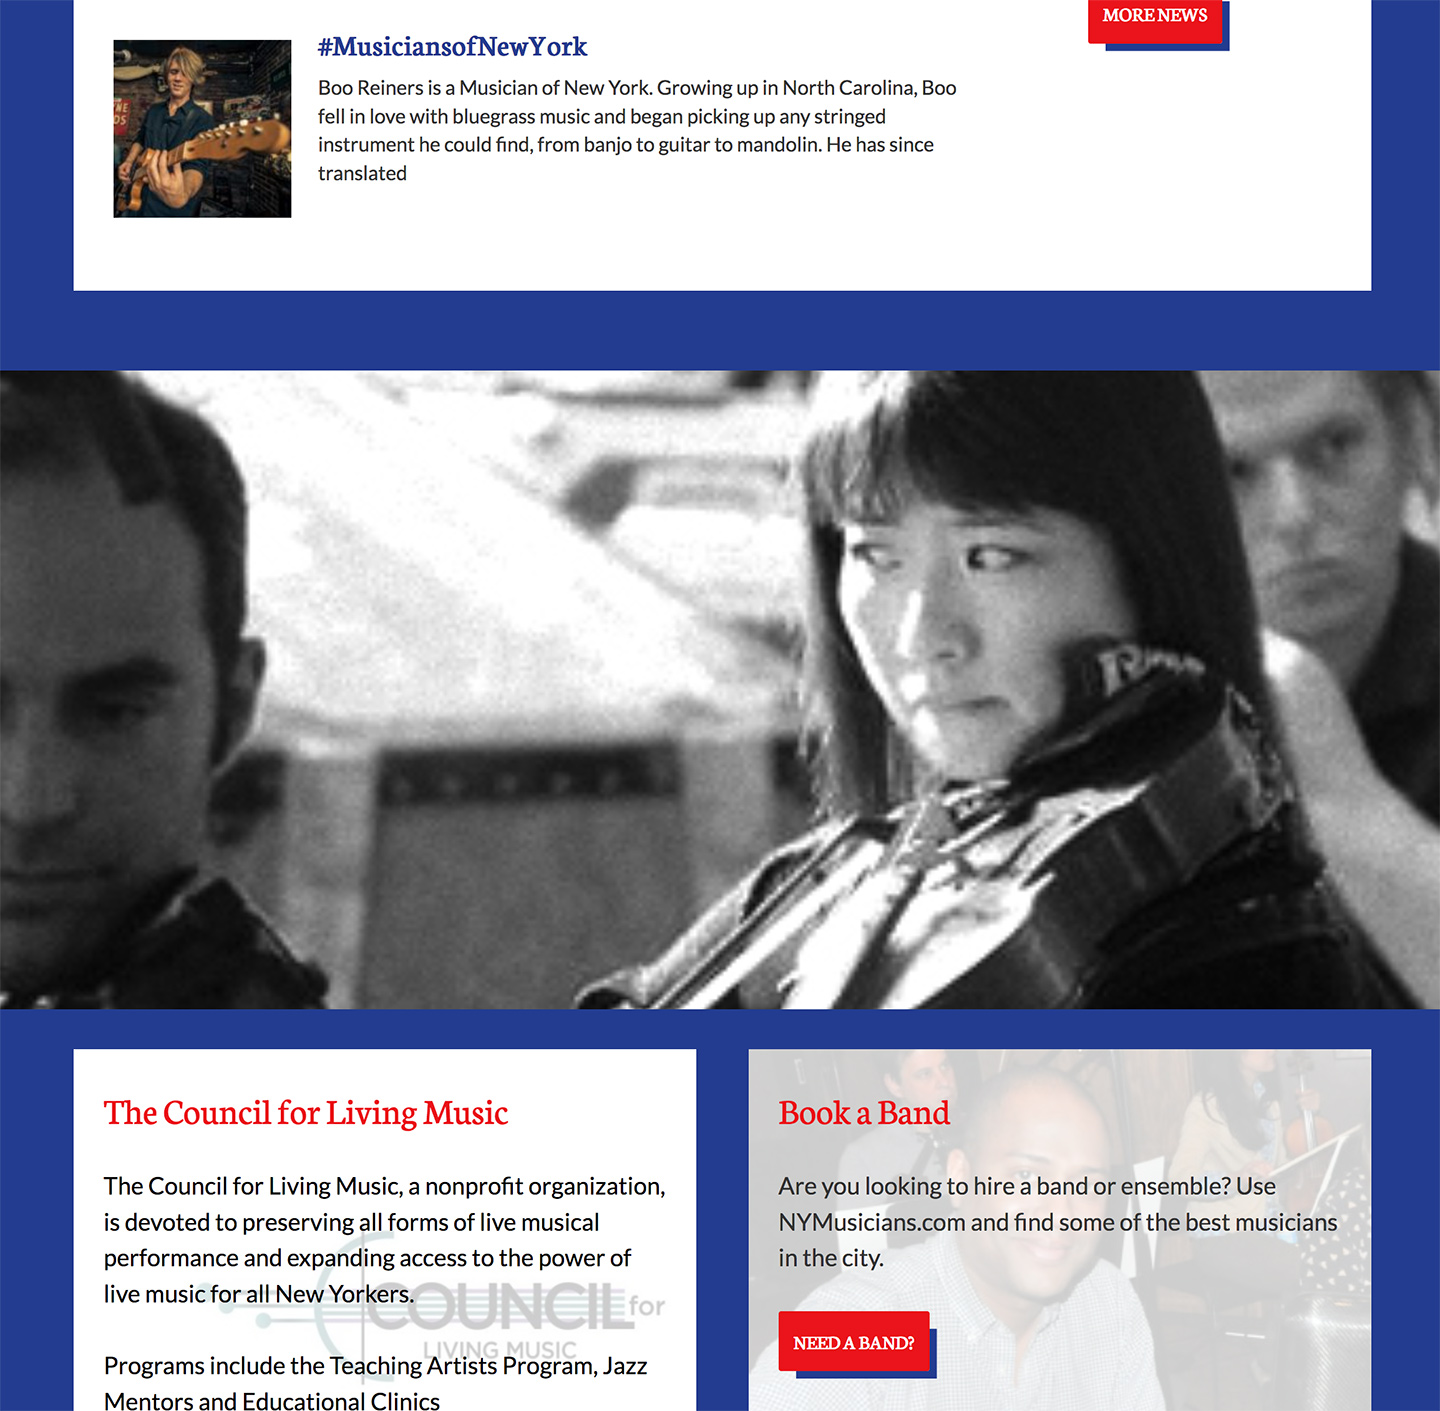 American Federation of Musicians NYC Local 802: Local 802 Homepage Features